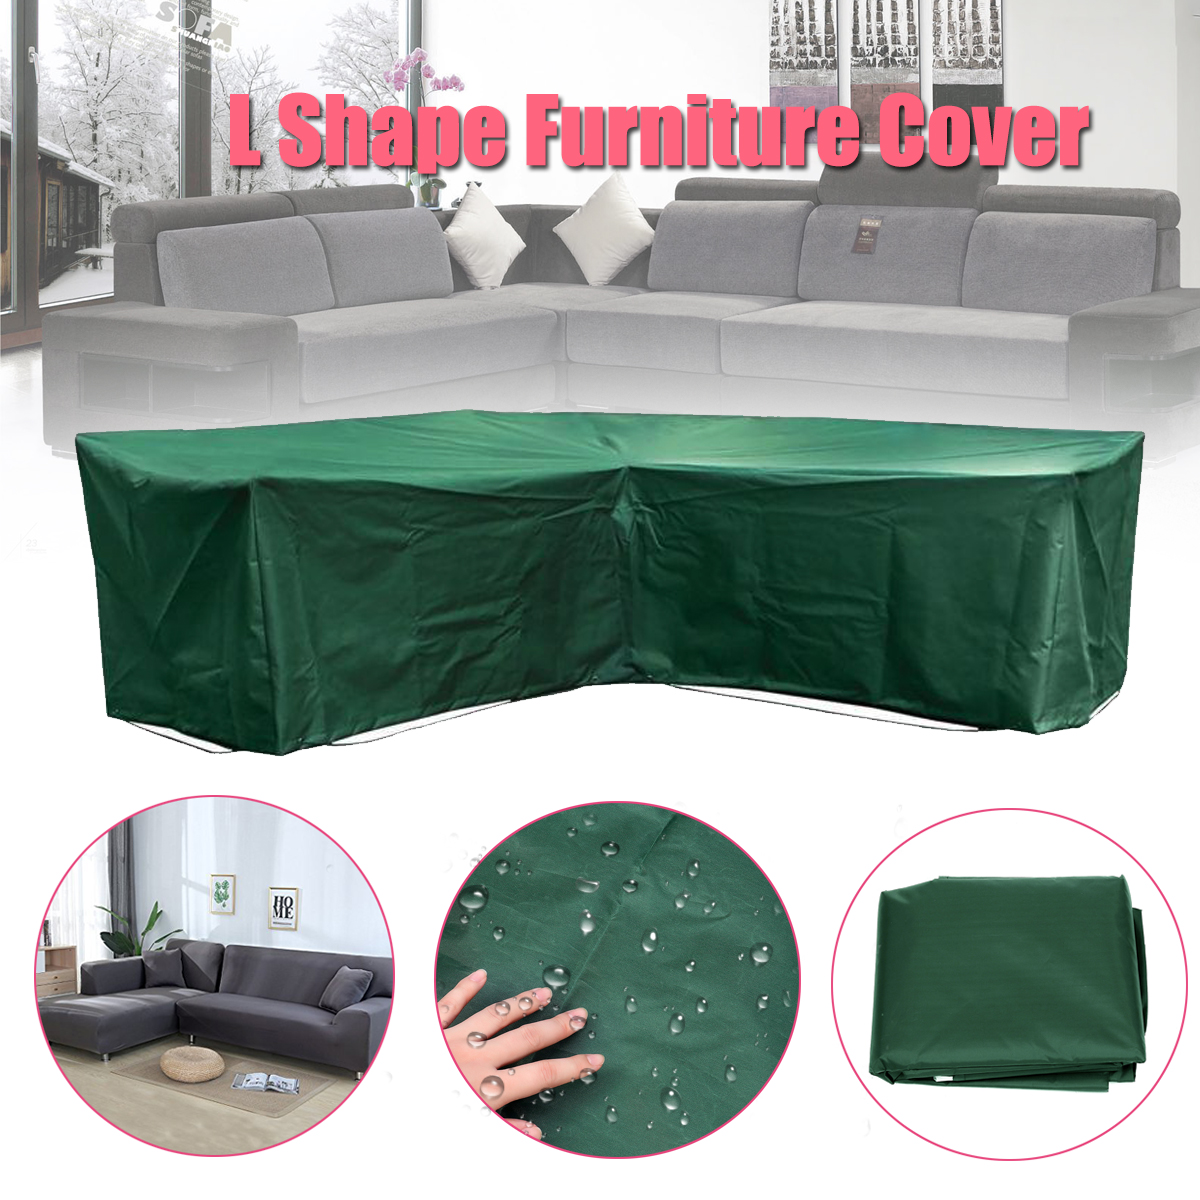 Us 17 06 50 Off Waterproof Garden Outdoor Furniture Rain Cover Cloth Sets Polyester Dustproof Protect Fabric For Sofa Suits Home Black In